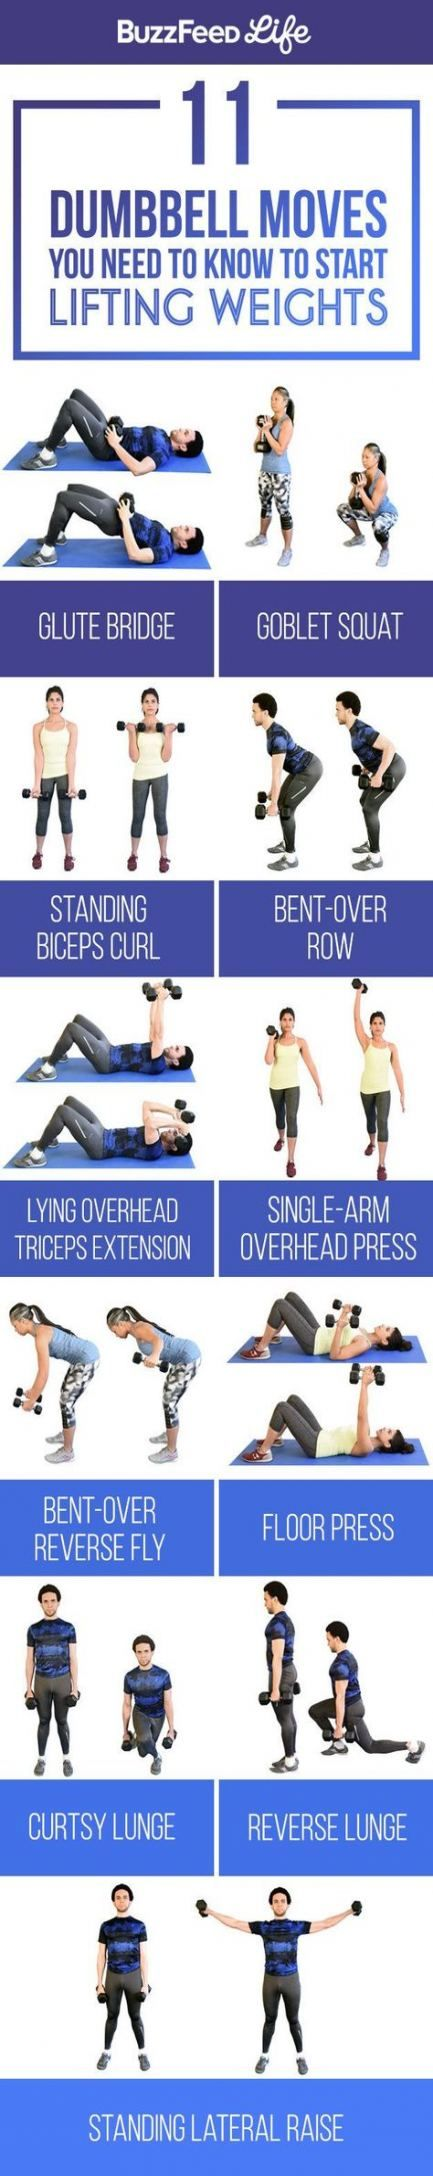 47+ Ideas for fitness motivation body inspiration strength training #motivation #fitness